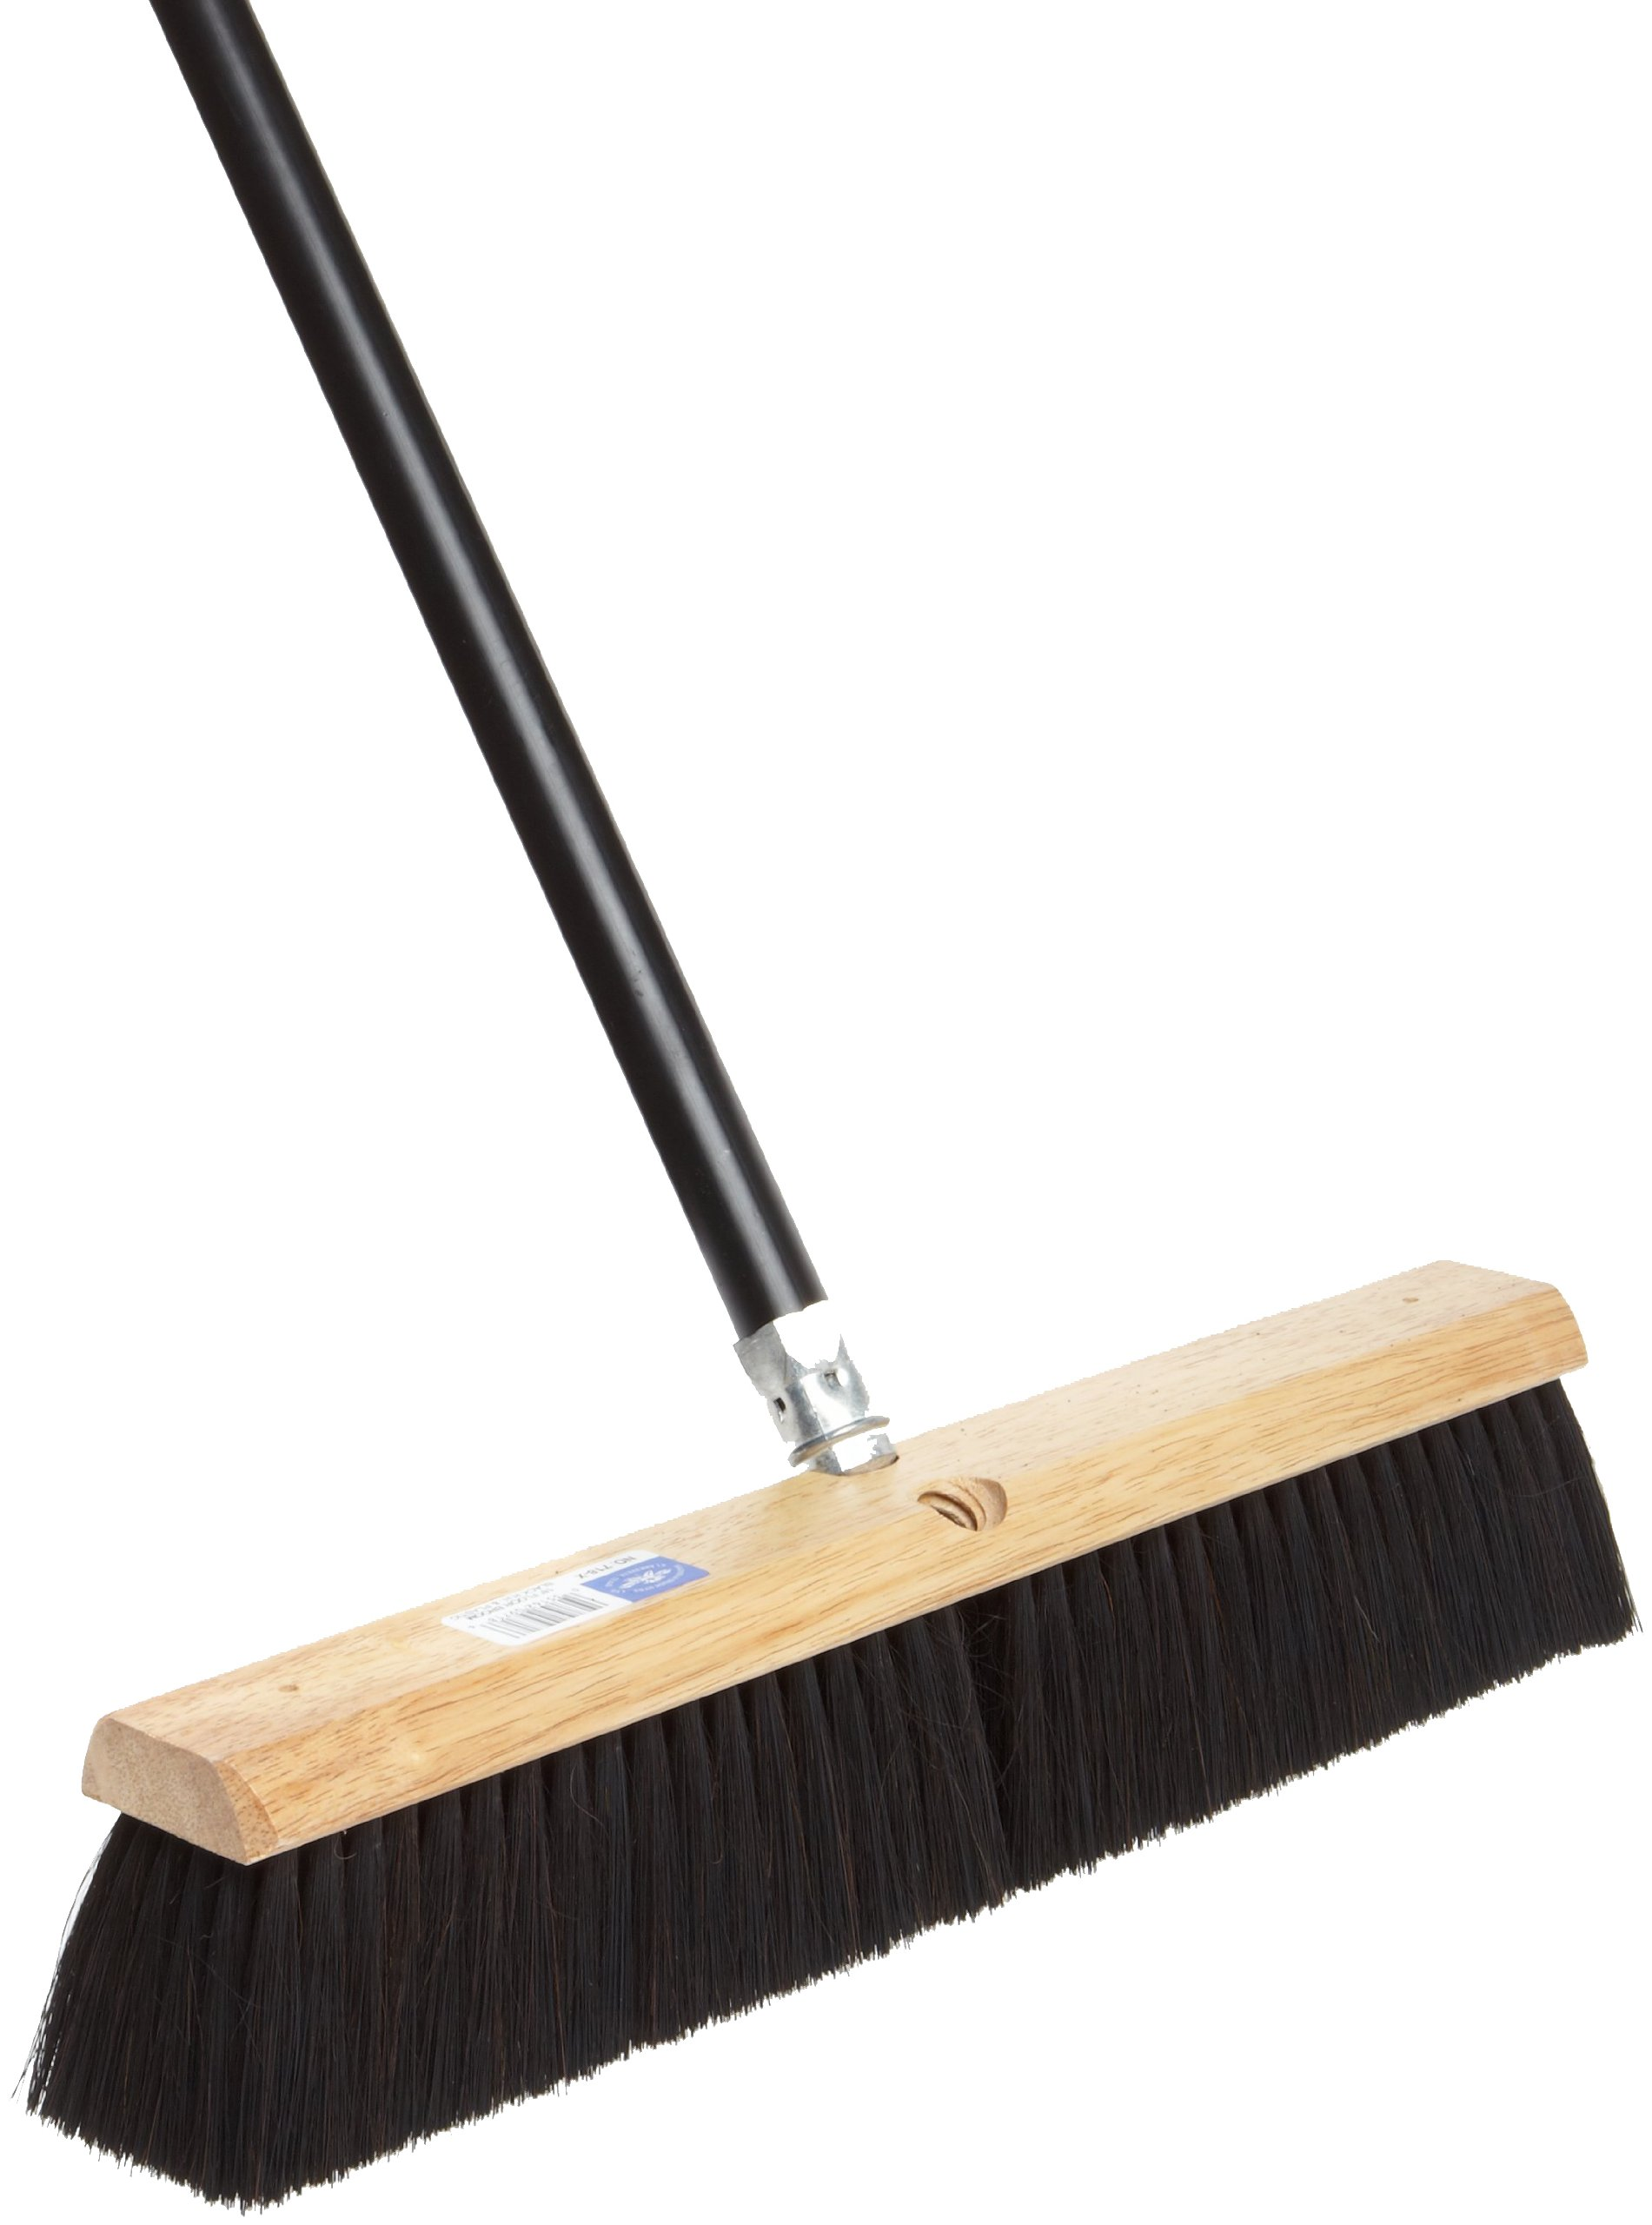 No. 7 Line Floor Brushes - 18'' floor brush w/m60 2e7b2d black plast